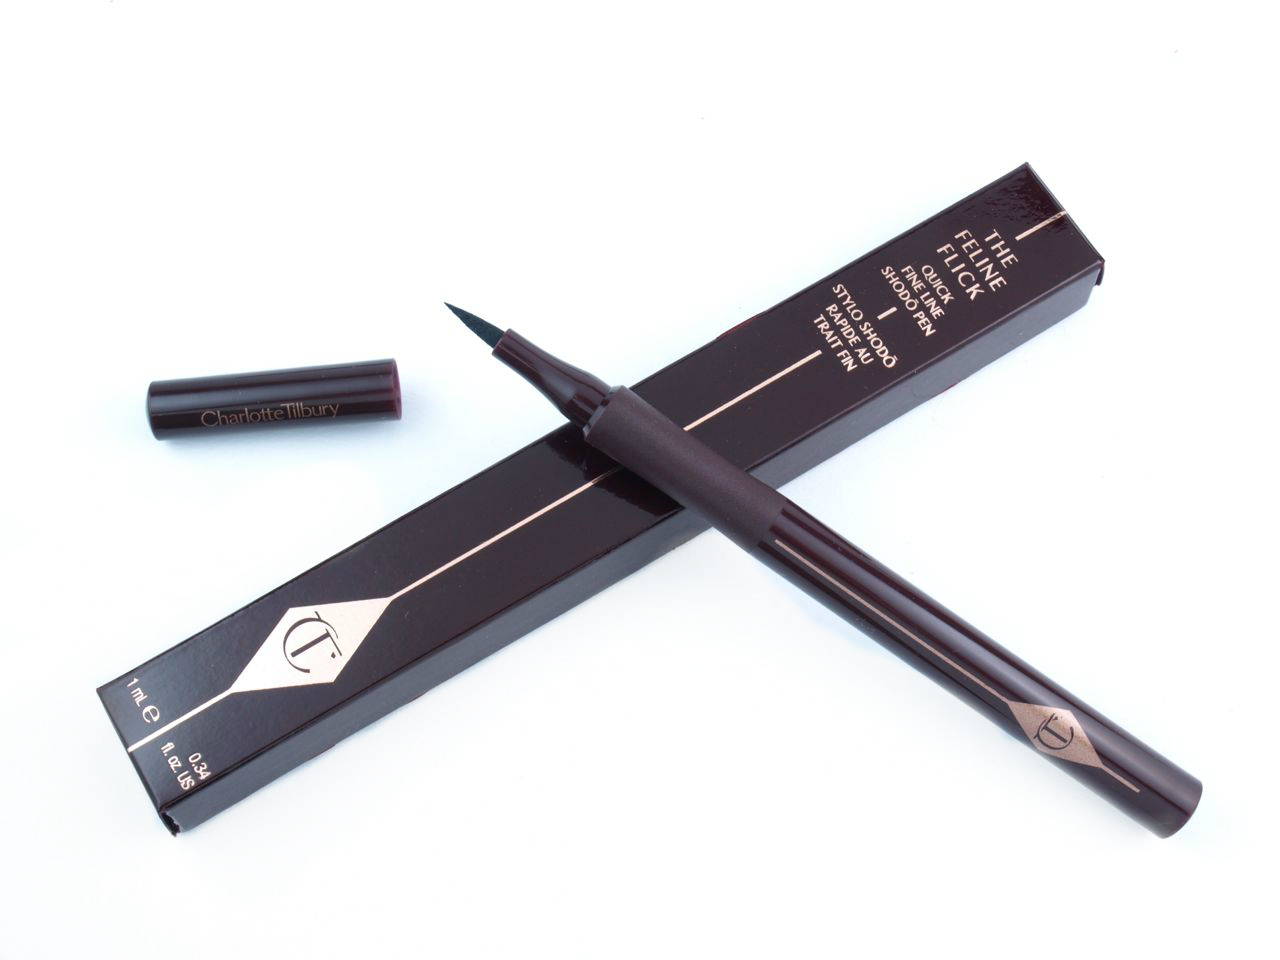 Charlotte Tilbury The Feline Flick Liquid Eyeliner: Review and Swatches